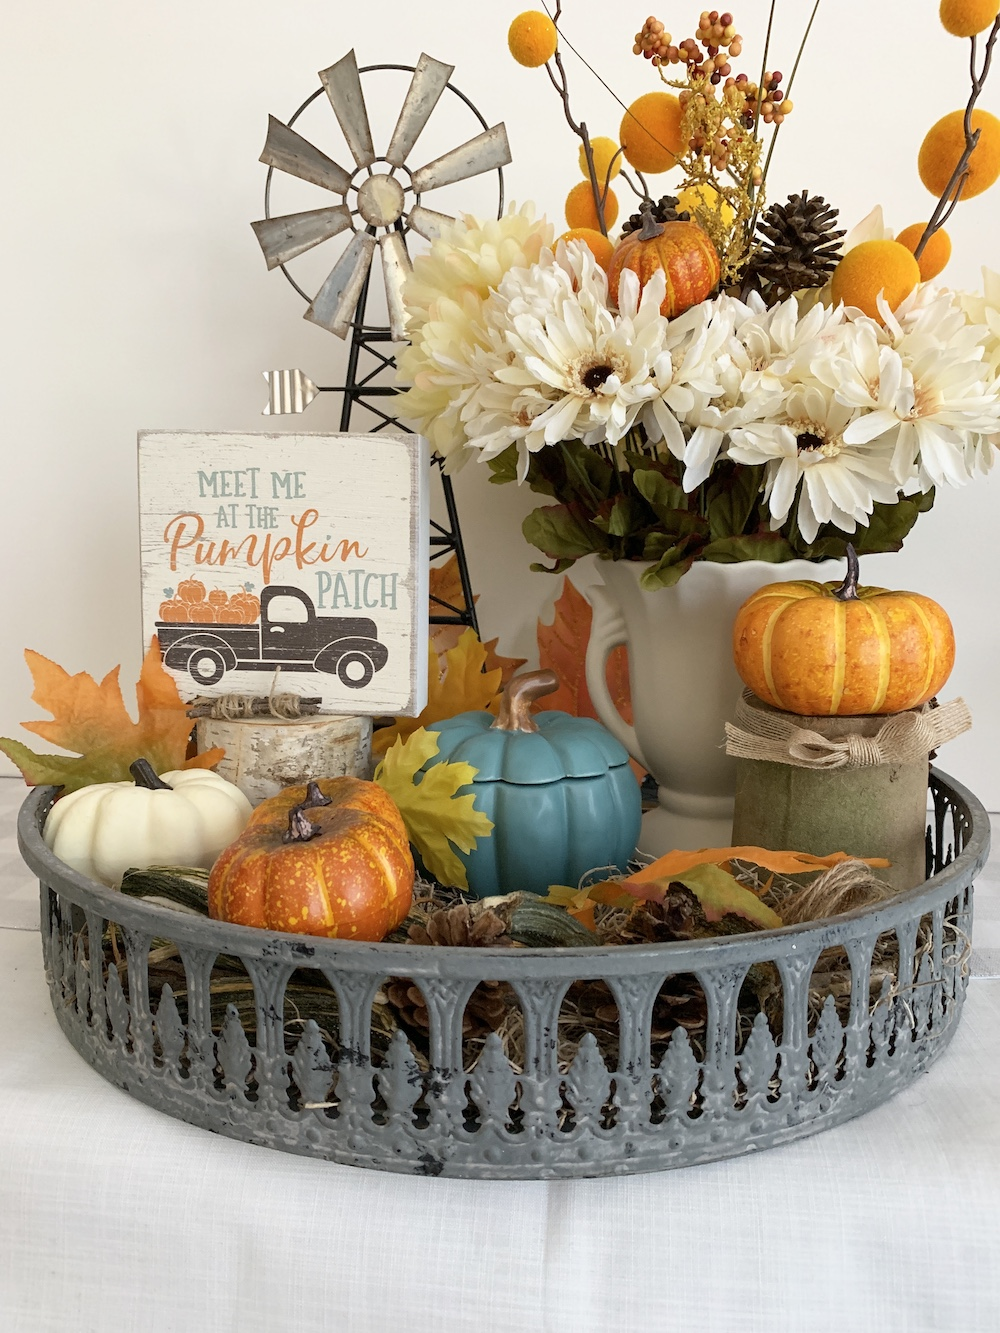 Decor Styling Ideas Pumpkin Filled Rustic Tray #DIY #DIYDecor #AutumnDecor #FallDecor #AutumnDecorDIY